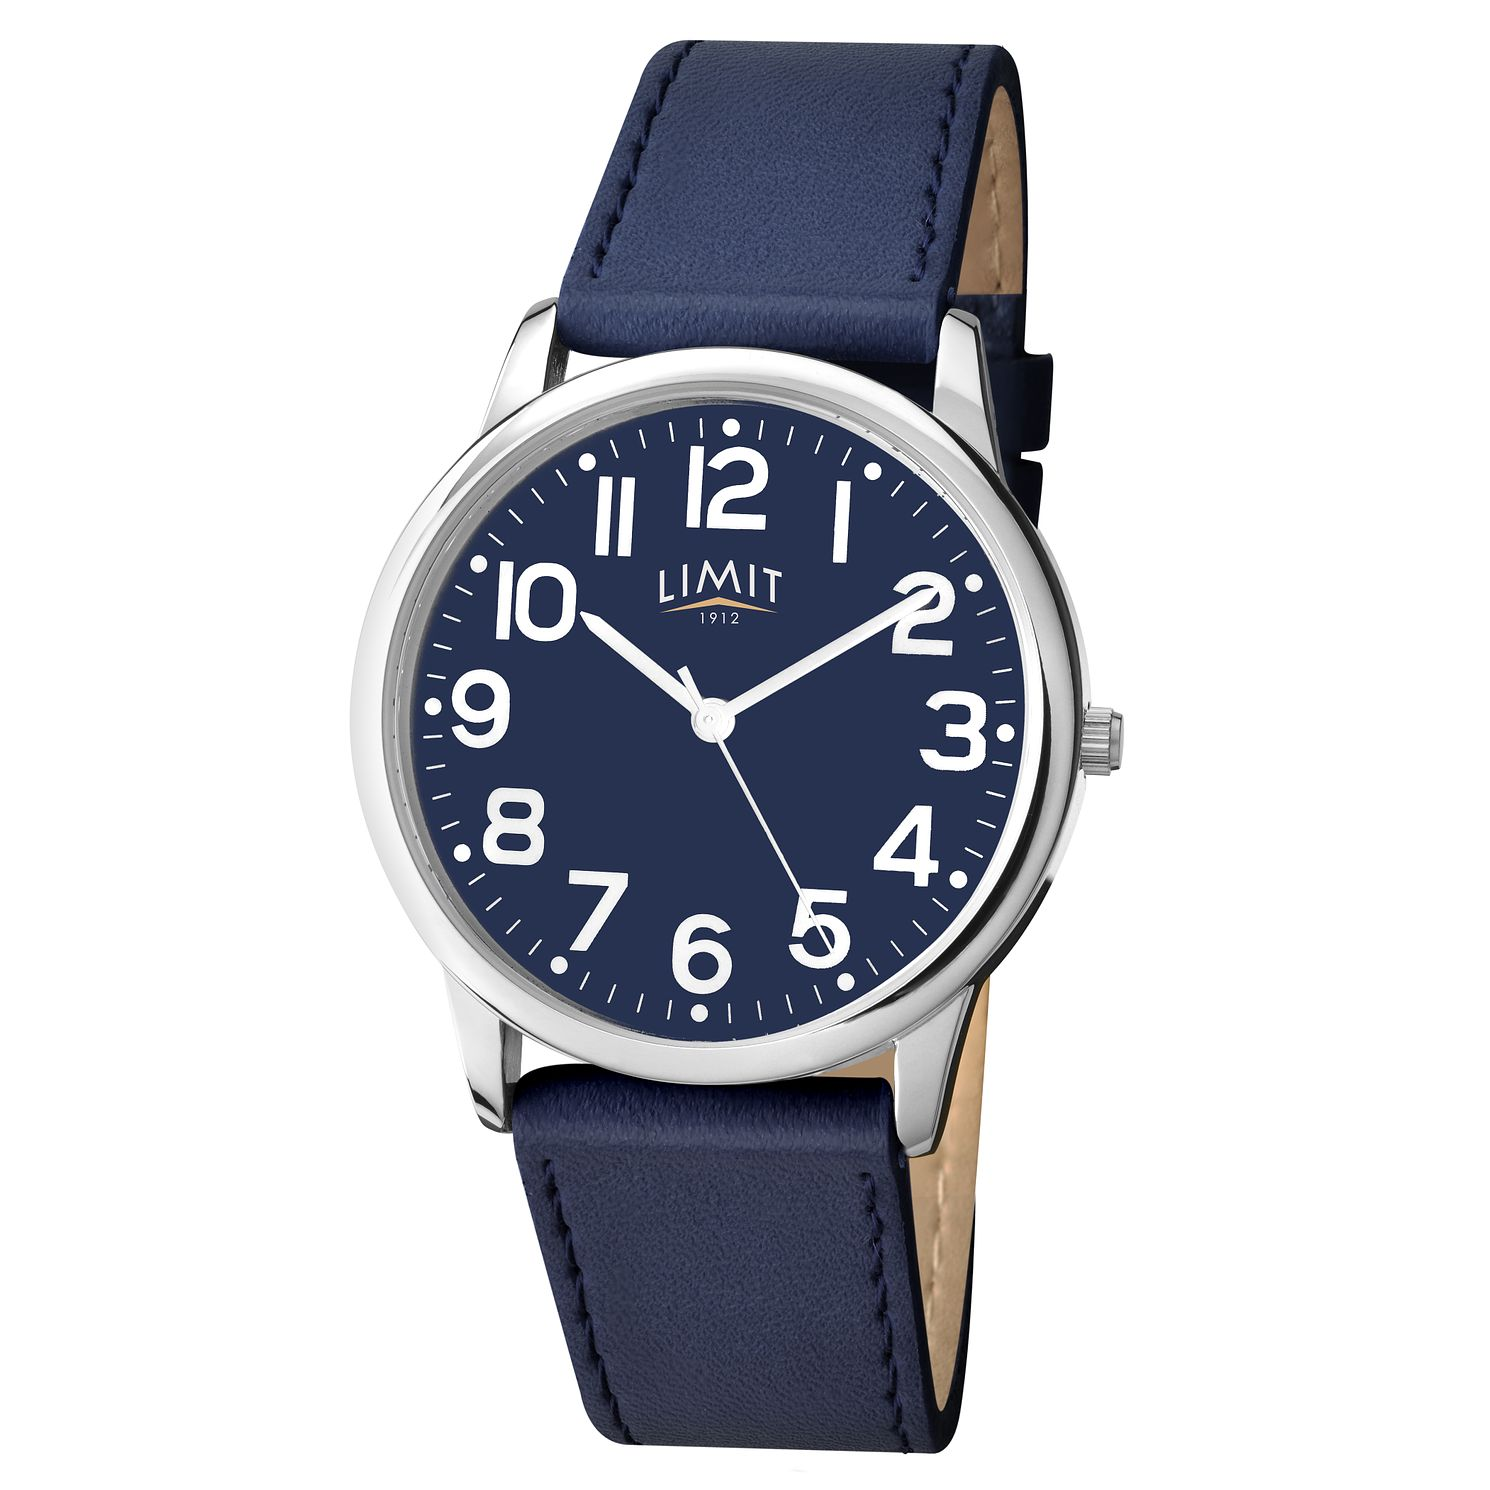 Limit Men's Silver Tone & Navy Blue Strap Watch - Product number 9408355